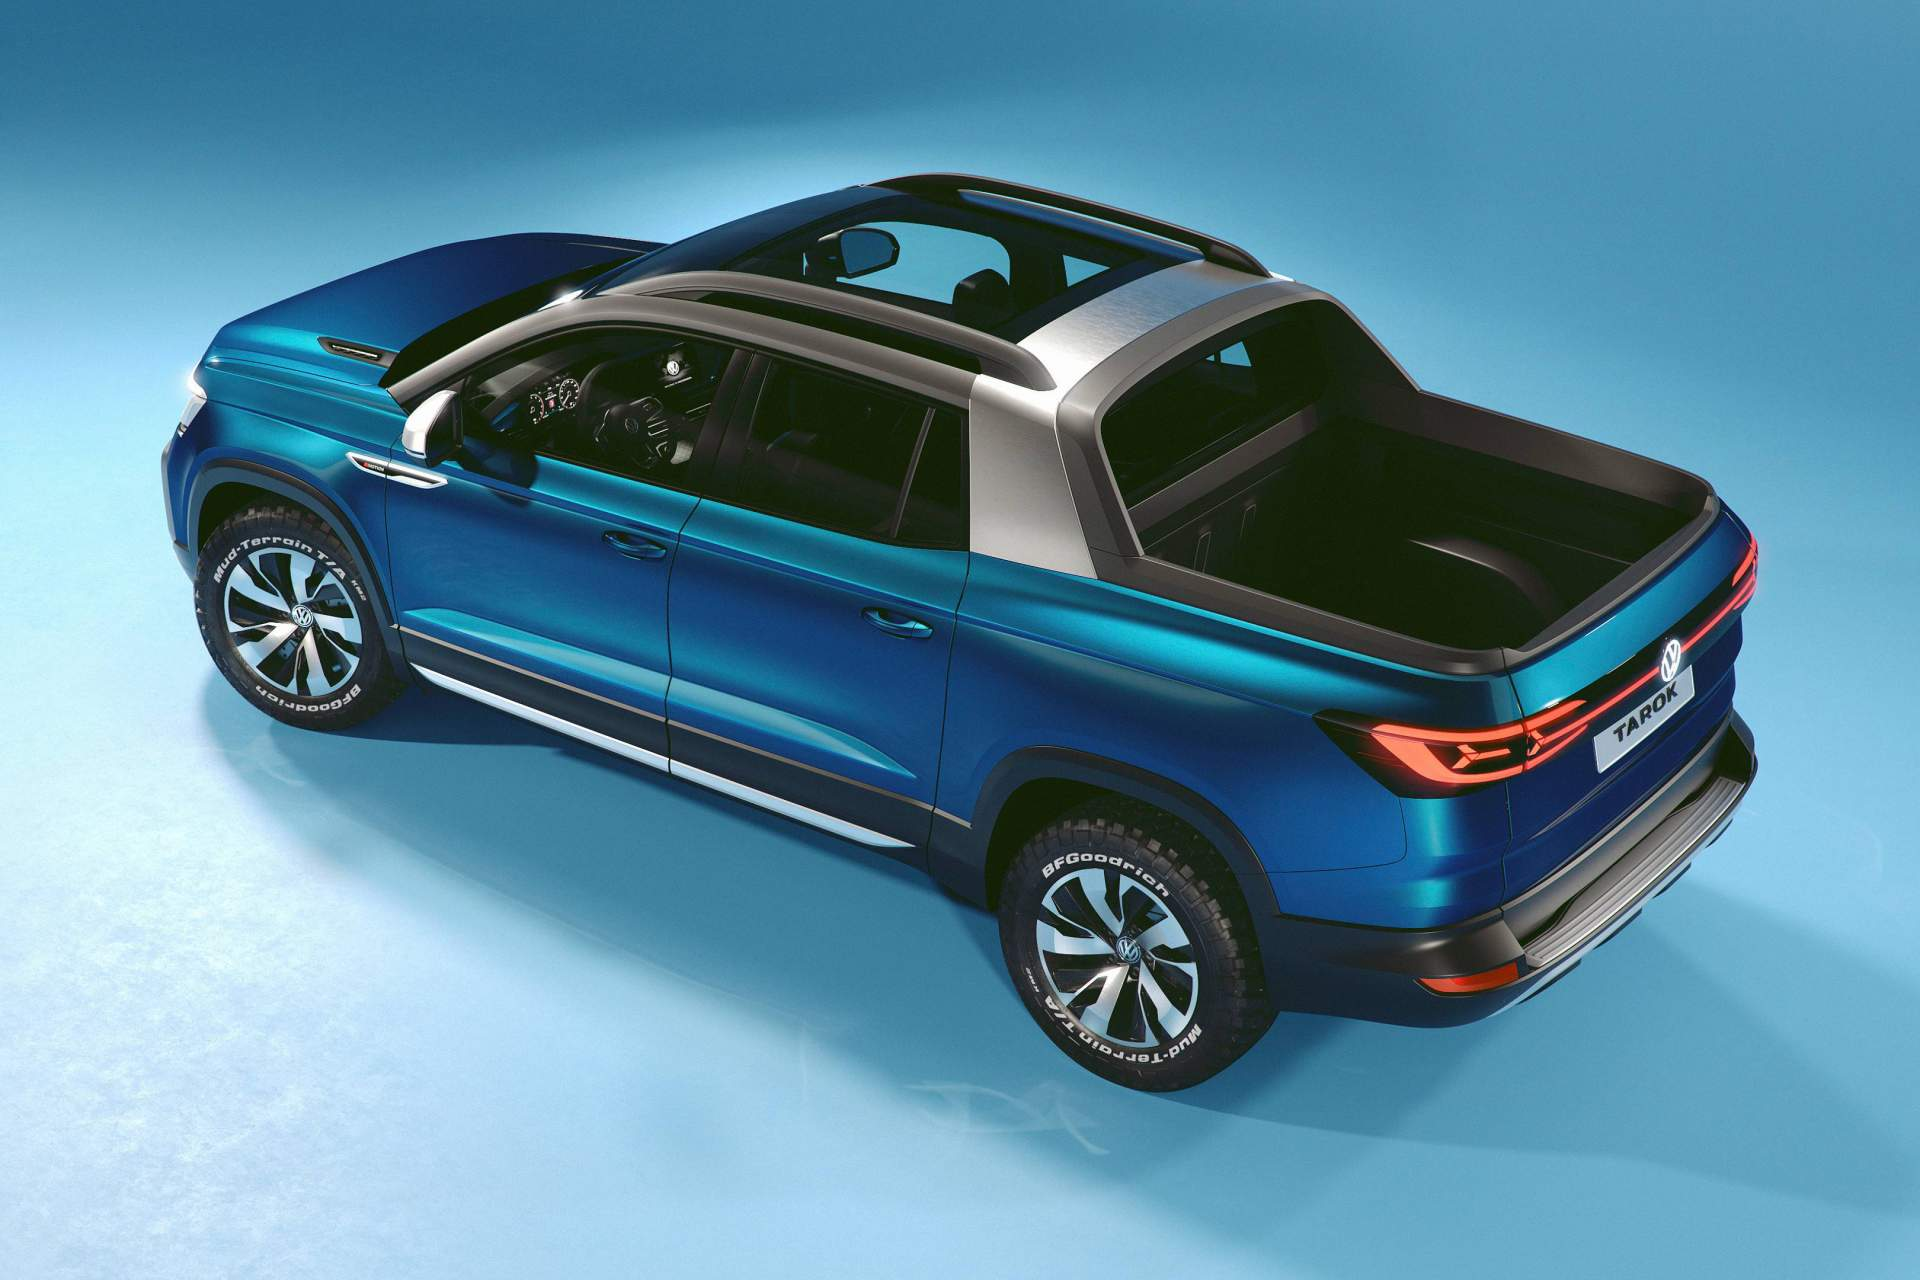 Volkswagen Tarok Pickup Truck Revealed In Brazil